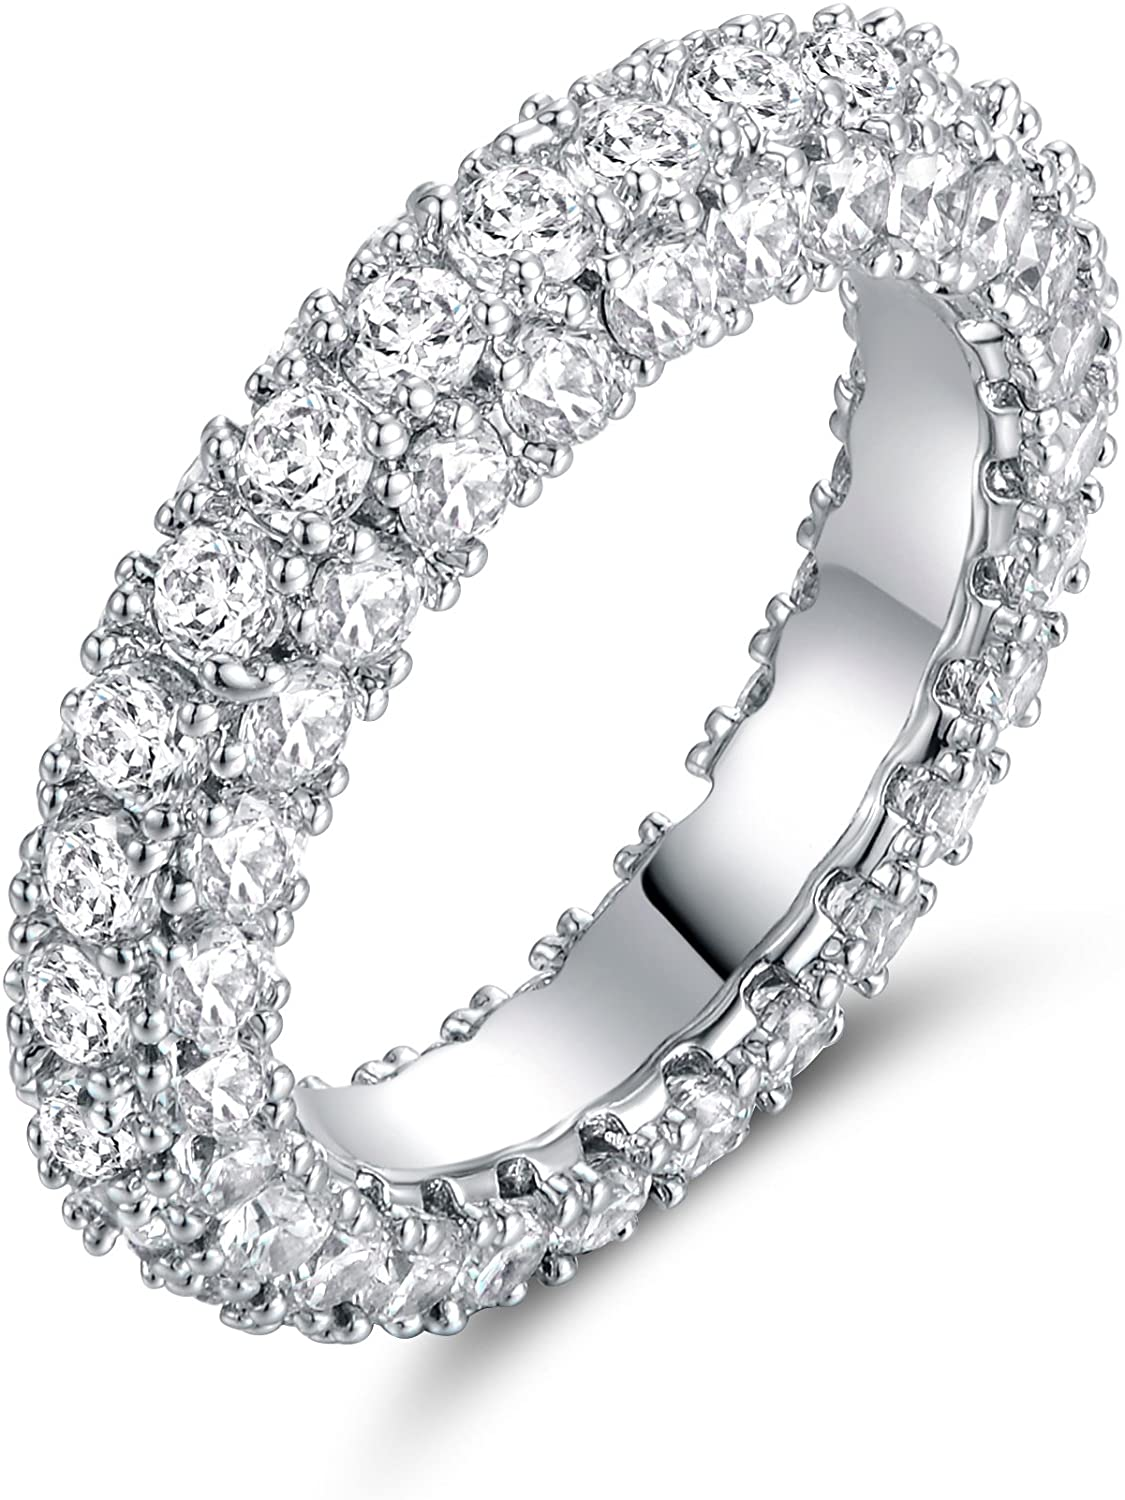 Barzel 18k White Gold Plated Cubic Zirconia Statement Cocktail Eternity Band Ring Jewelry